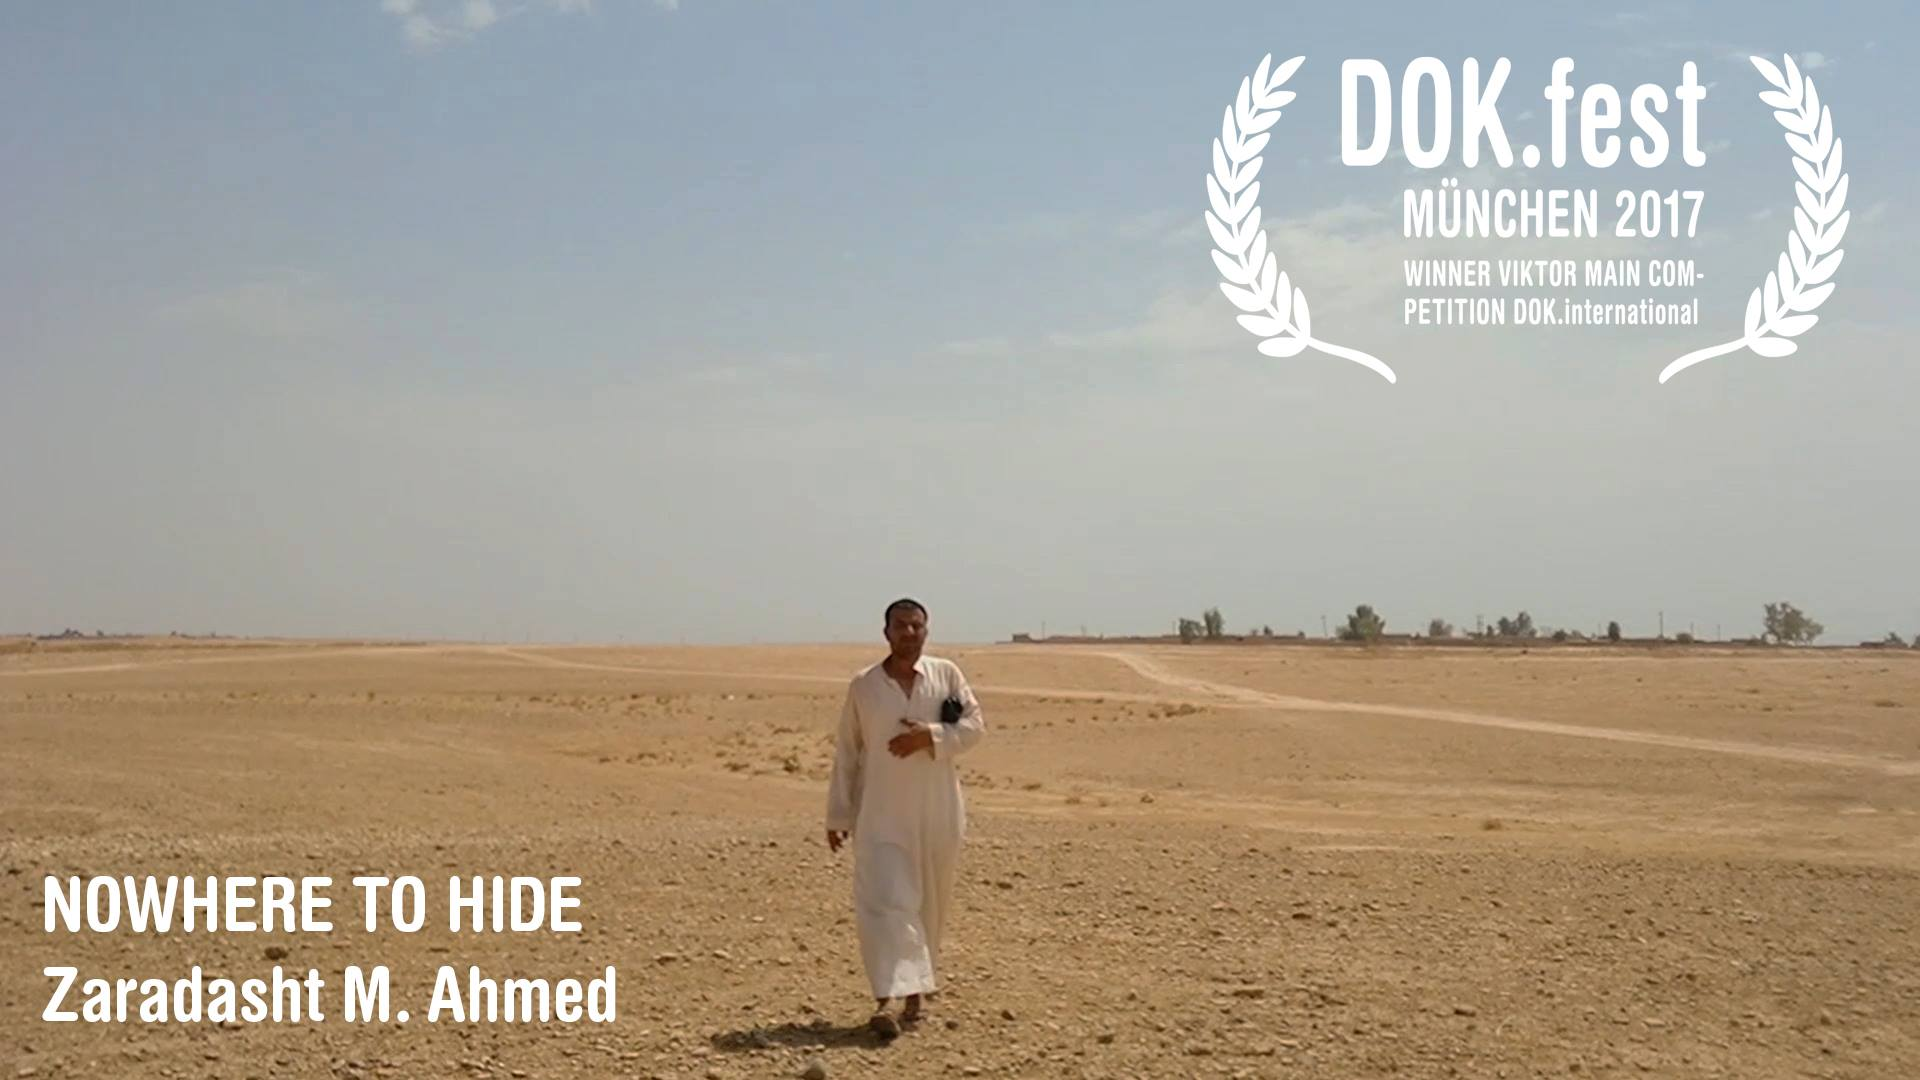 Nowhere to hide: DOK.fest München Award